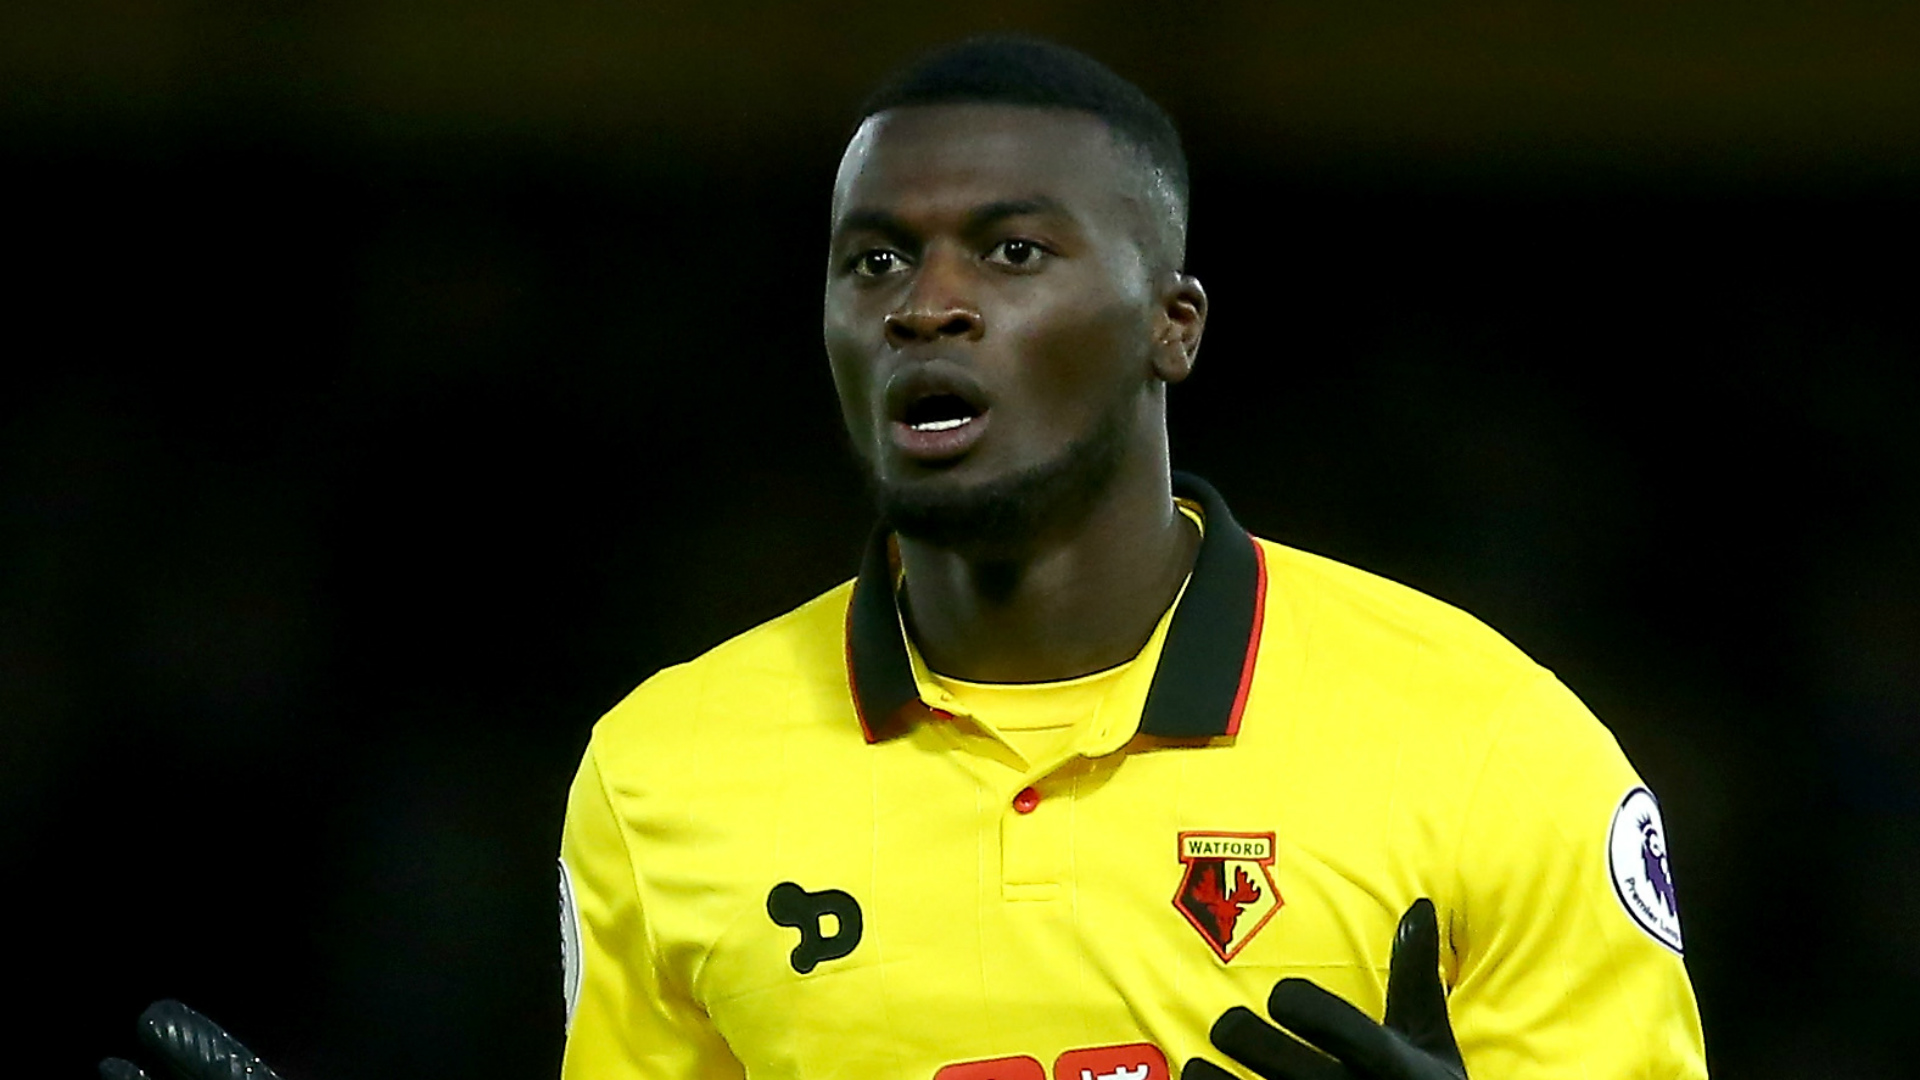 Niang-cropped_ox0cg8im15yh11h95pyistkag